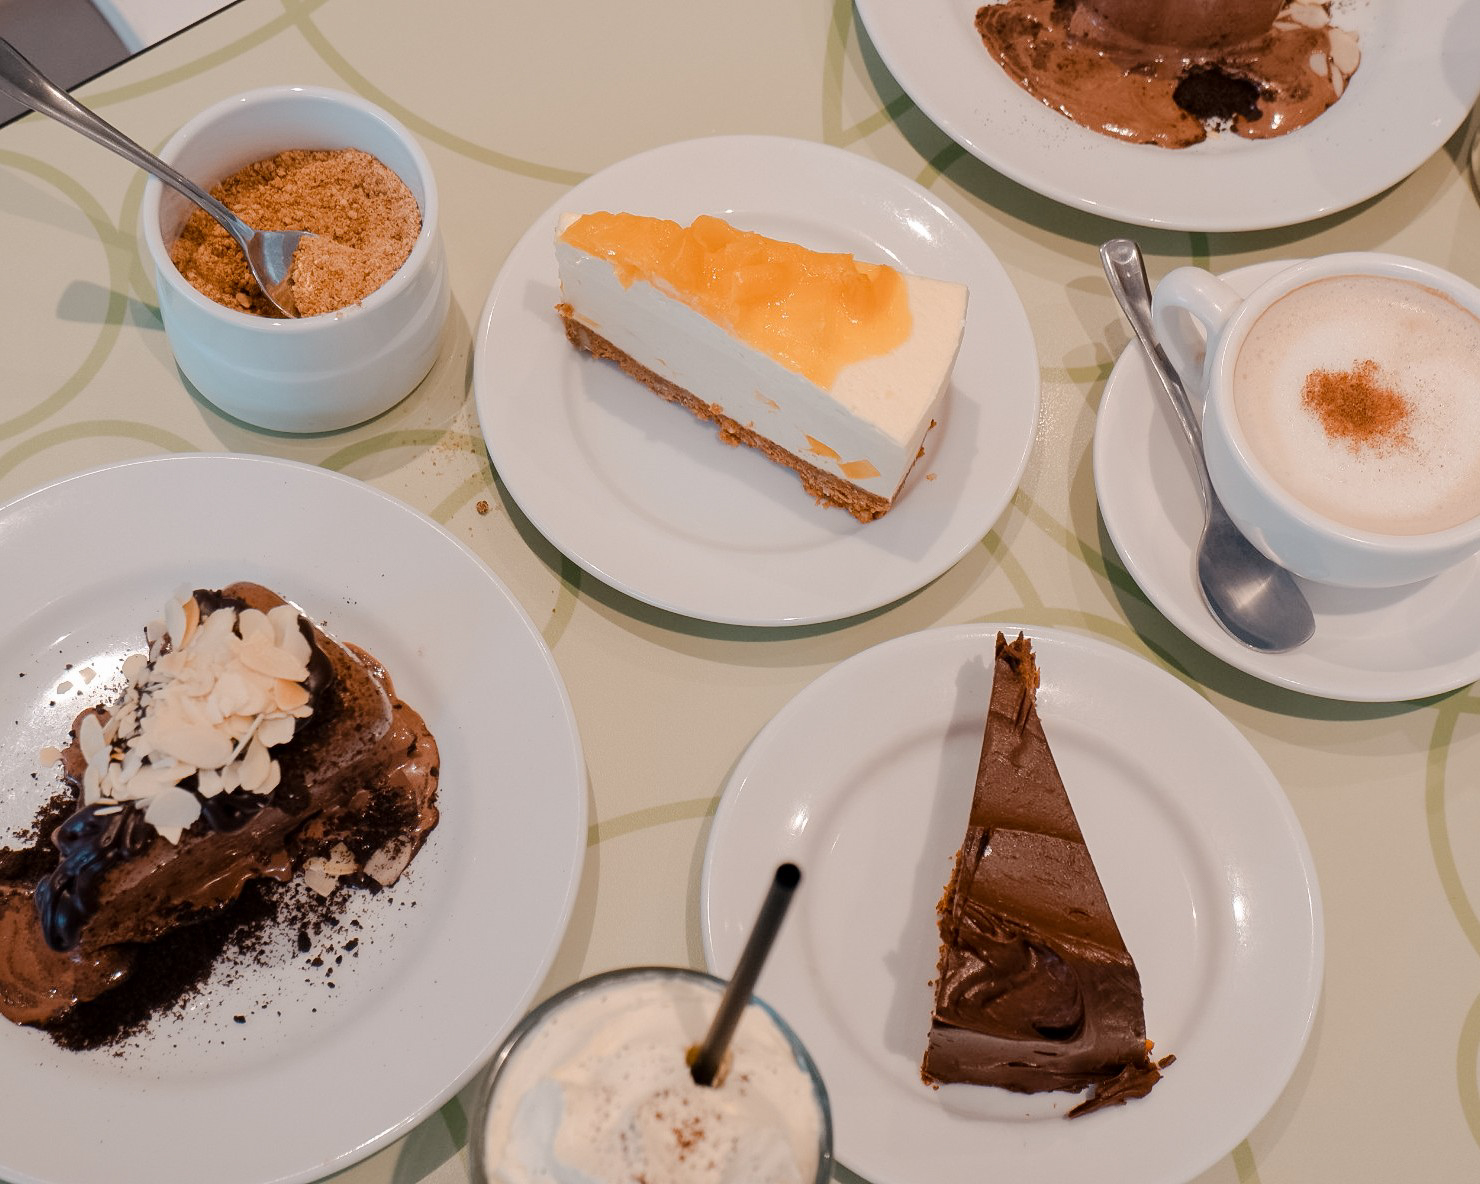 Calea Pastries & Coffee: Bacolod's Cake Heaven